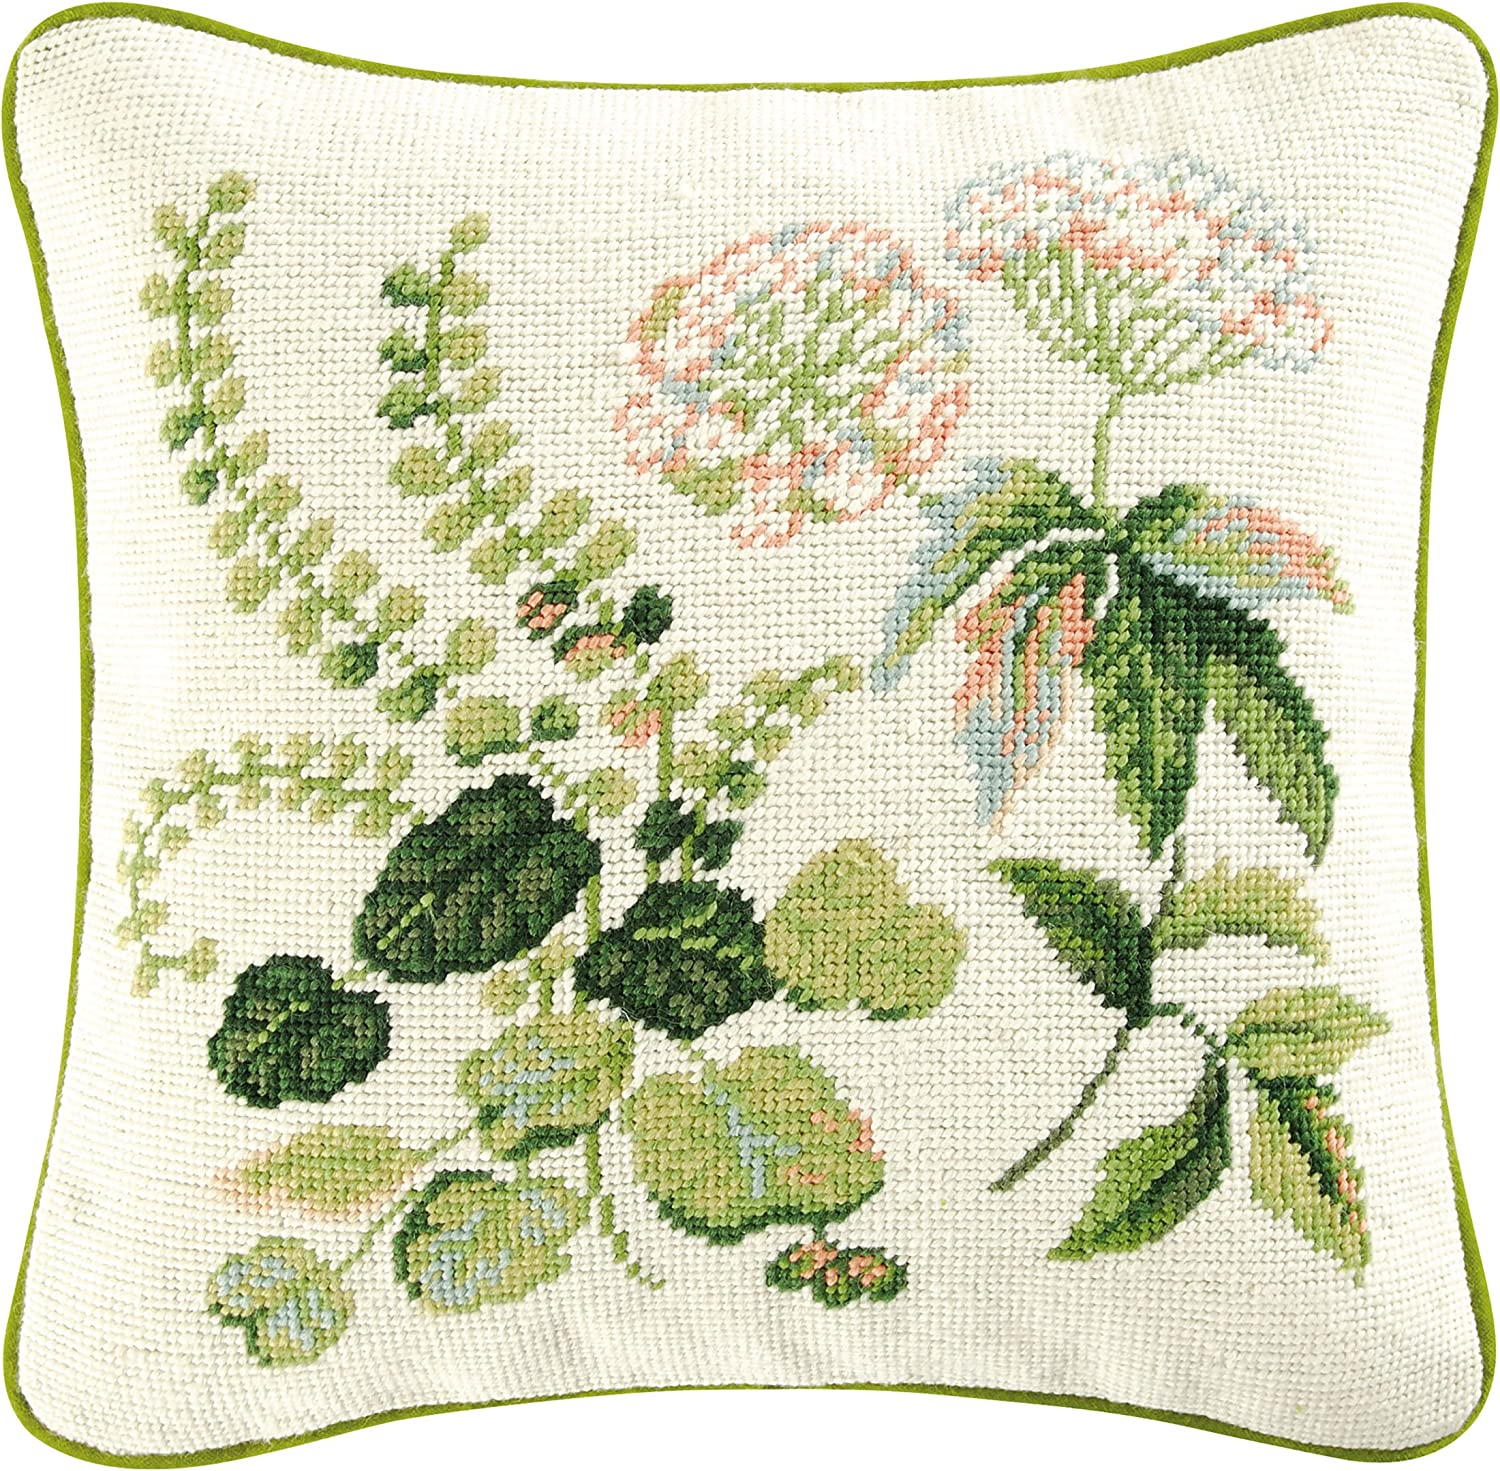 CF Home Colonial Williamsburg Fern Needlepoint 14 x M Spring new work Indianapolis Mall one after another Pillow